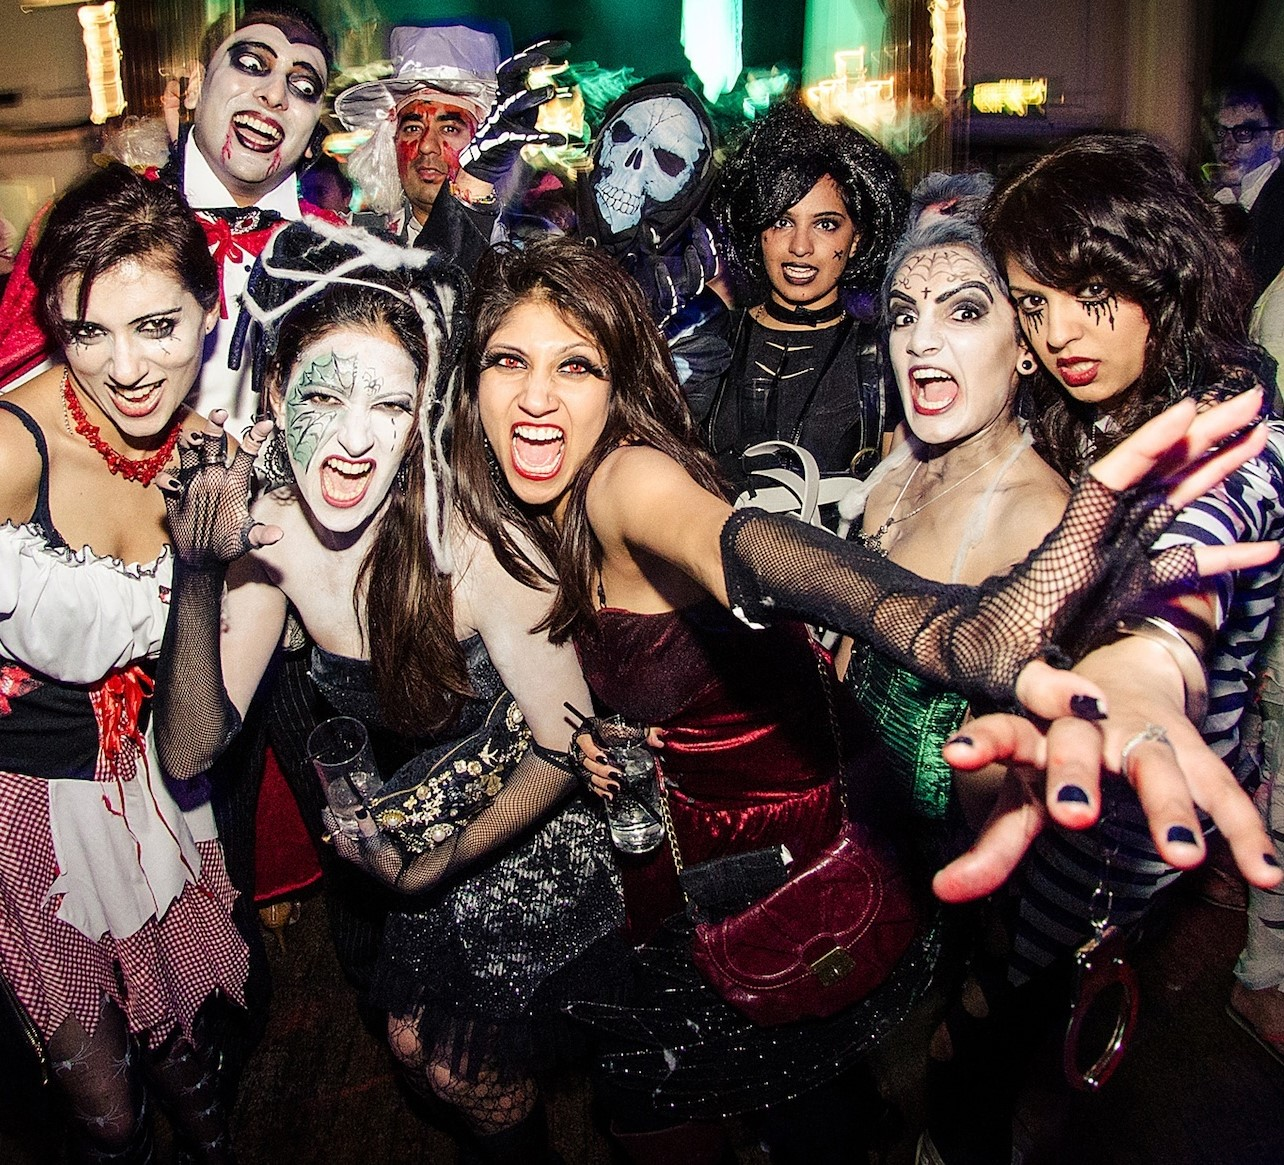 Sombrero NYC Halloween party 2019 Sombrero NYC Halloween party 2019 on Oct 31, 17:00@Sombrero Restaurant - Buy tickets and Get information on GametightNY